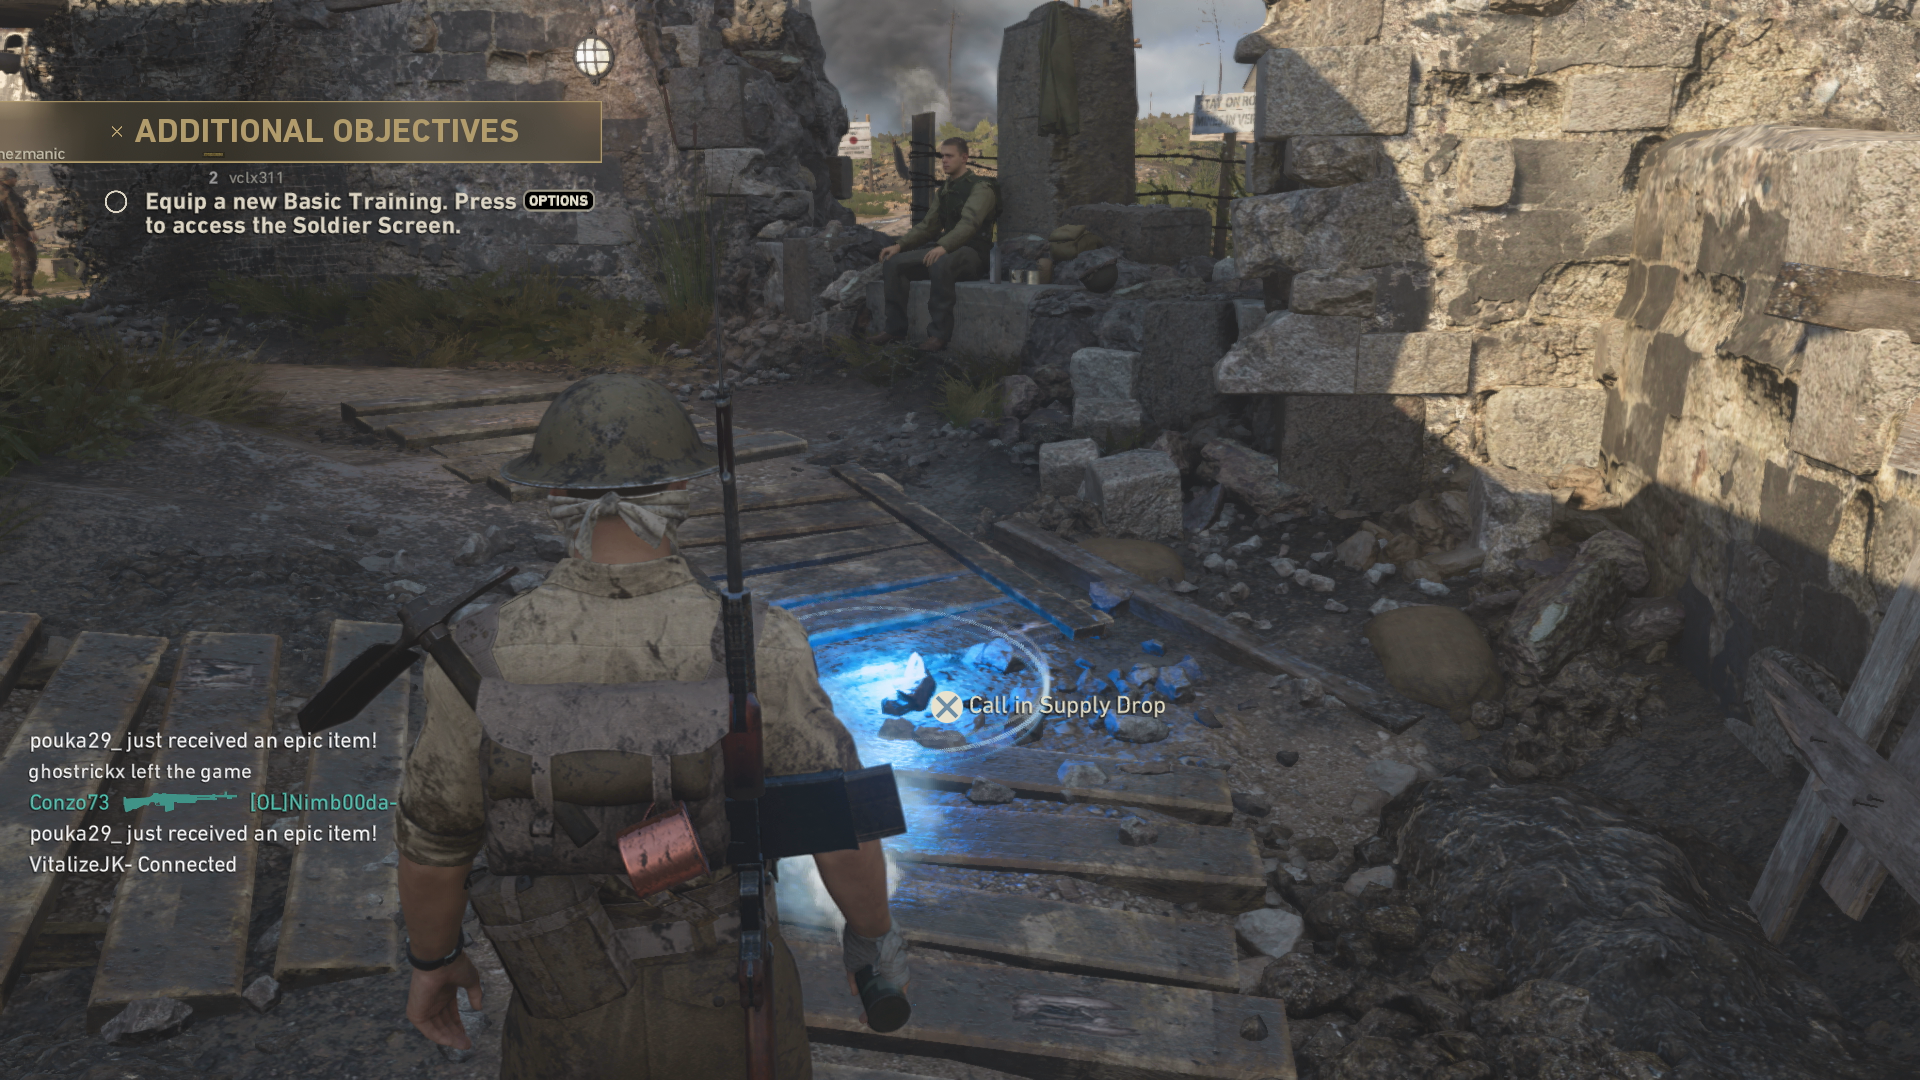 Opinion: Call of Duty: WW2's Server Mess and Bugs Badly Hurt